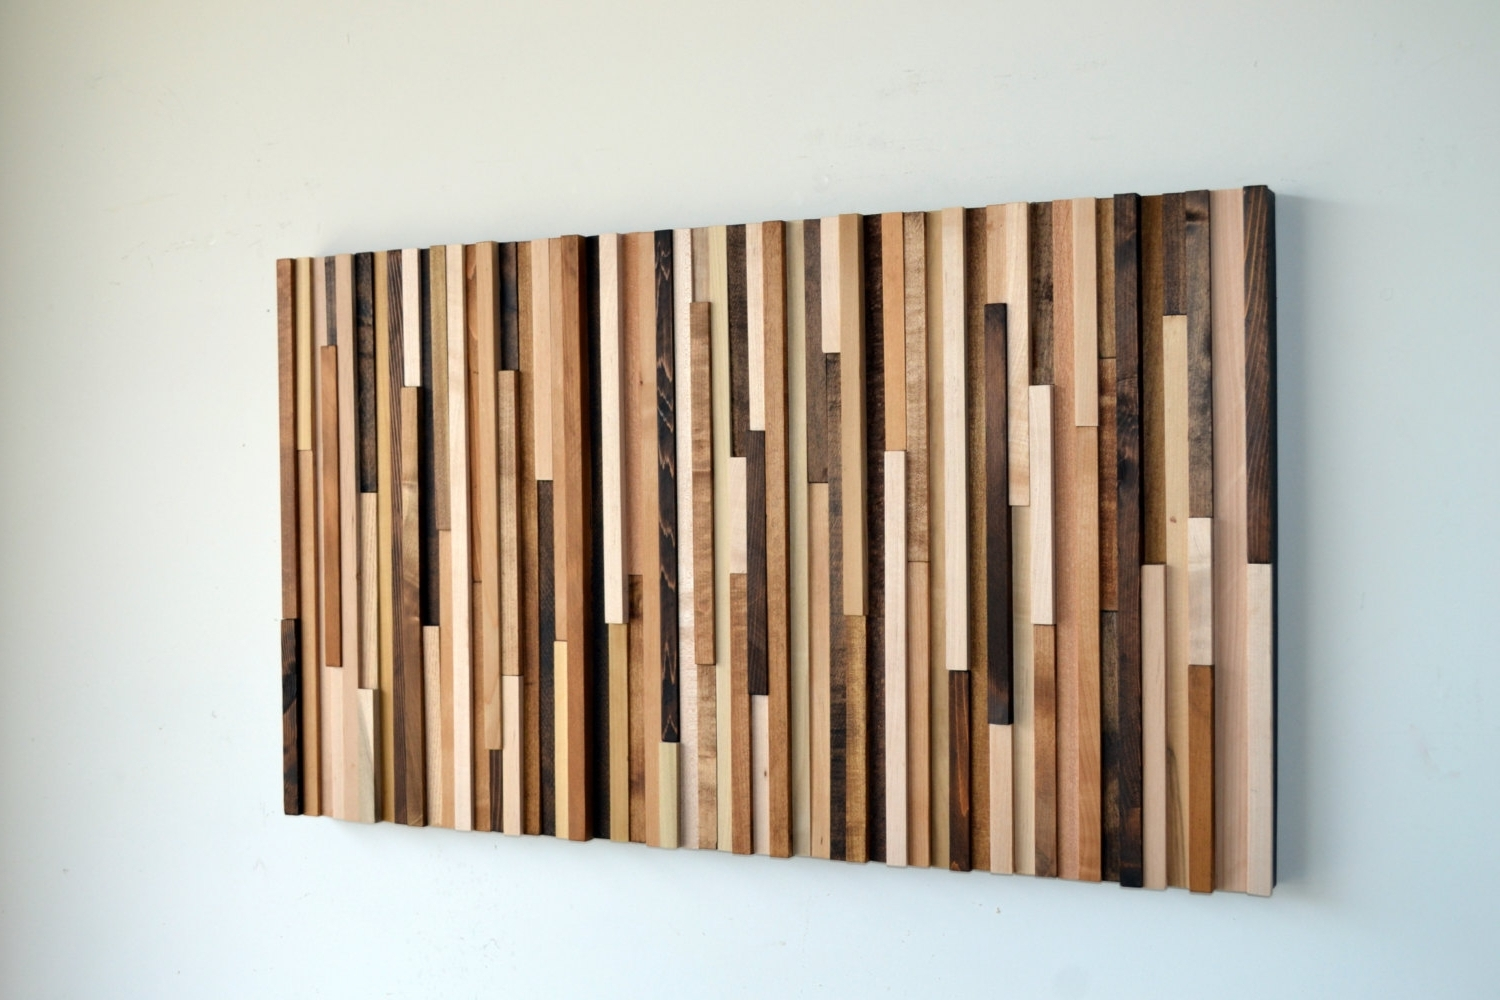 Well Known Decorative Wood Panels Wall Art • Walls Decor For Wooden Wall Art Panels (View 11 of 15)